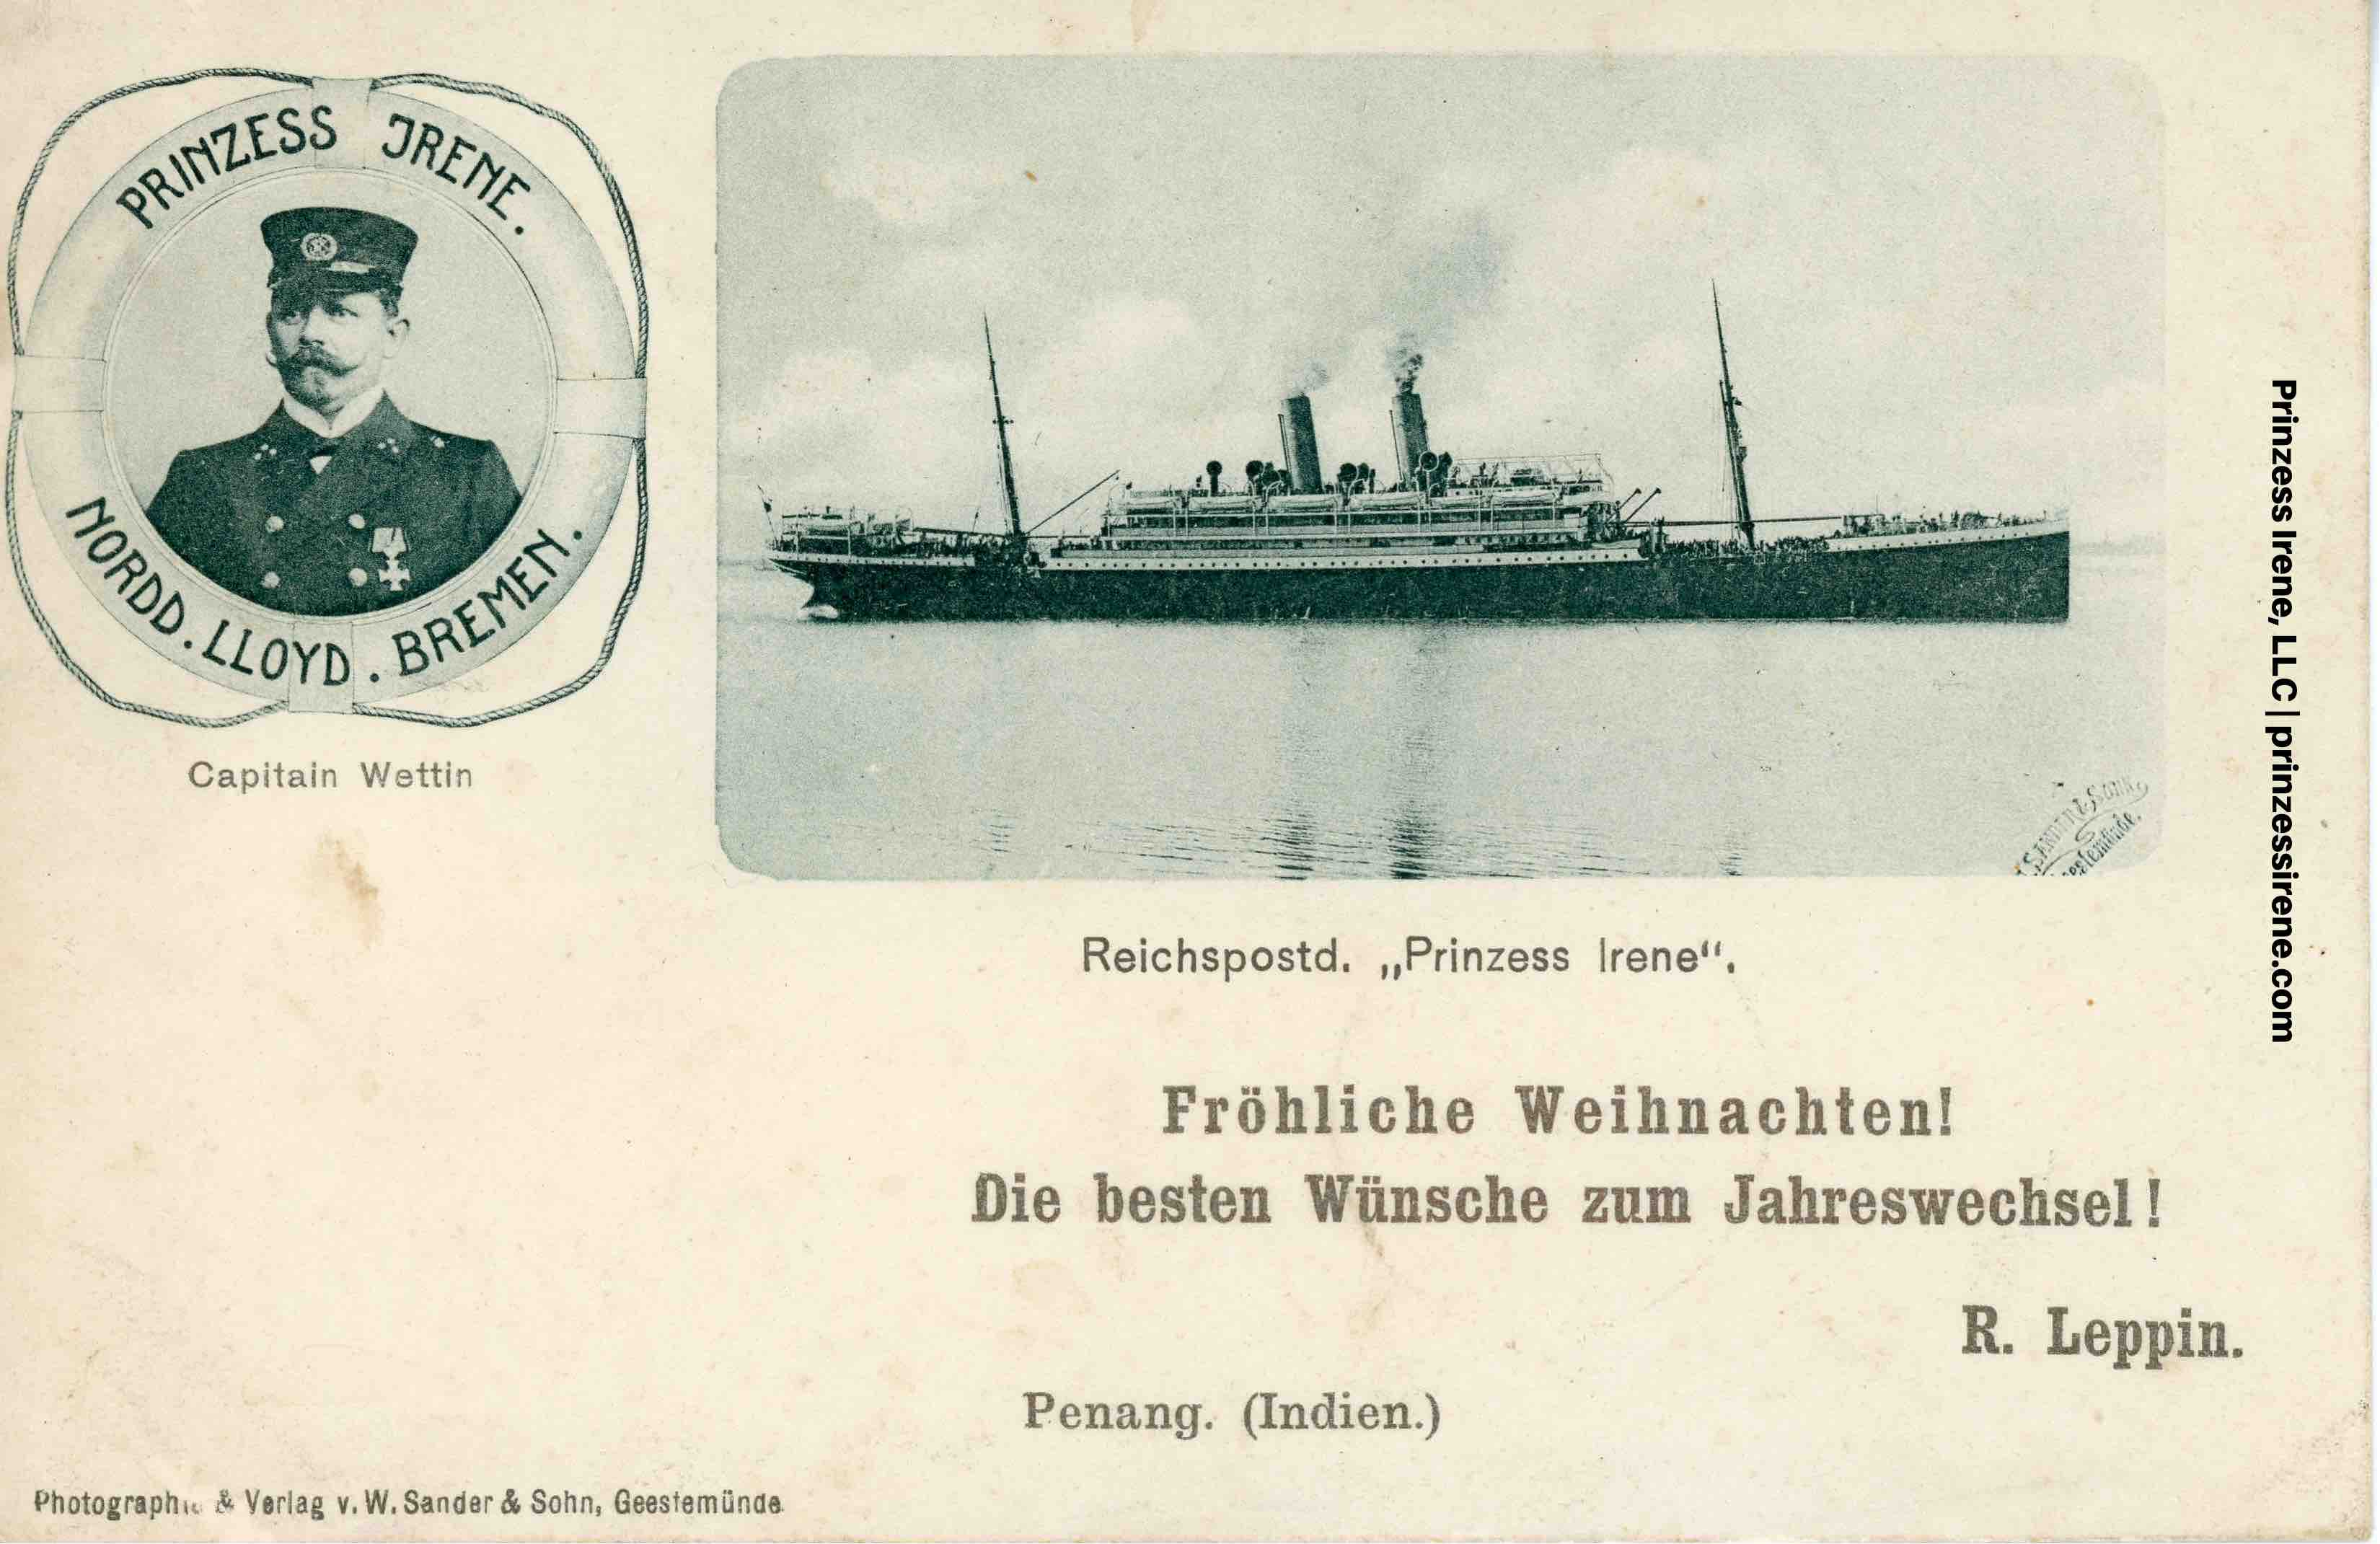 Prinzess Irene. Postcard, postmarked December 3, 1900.